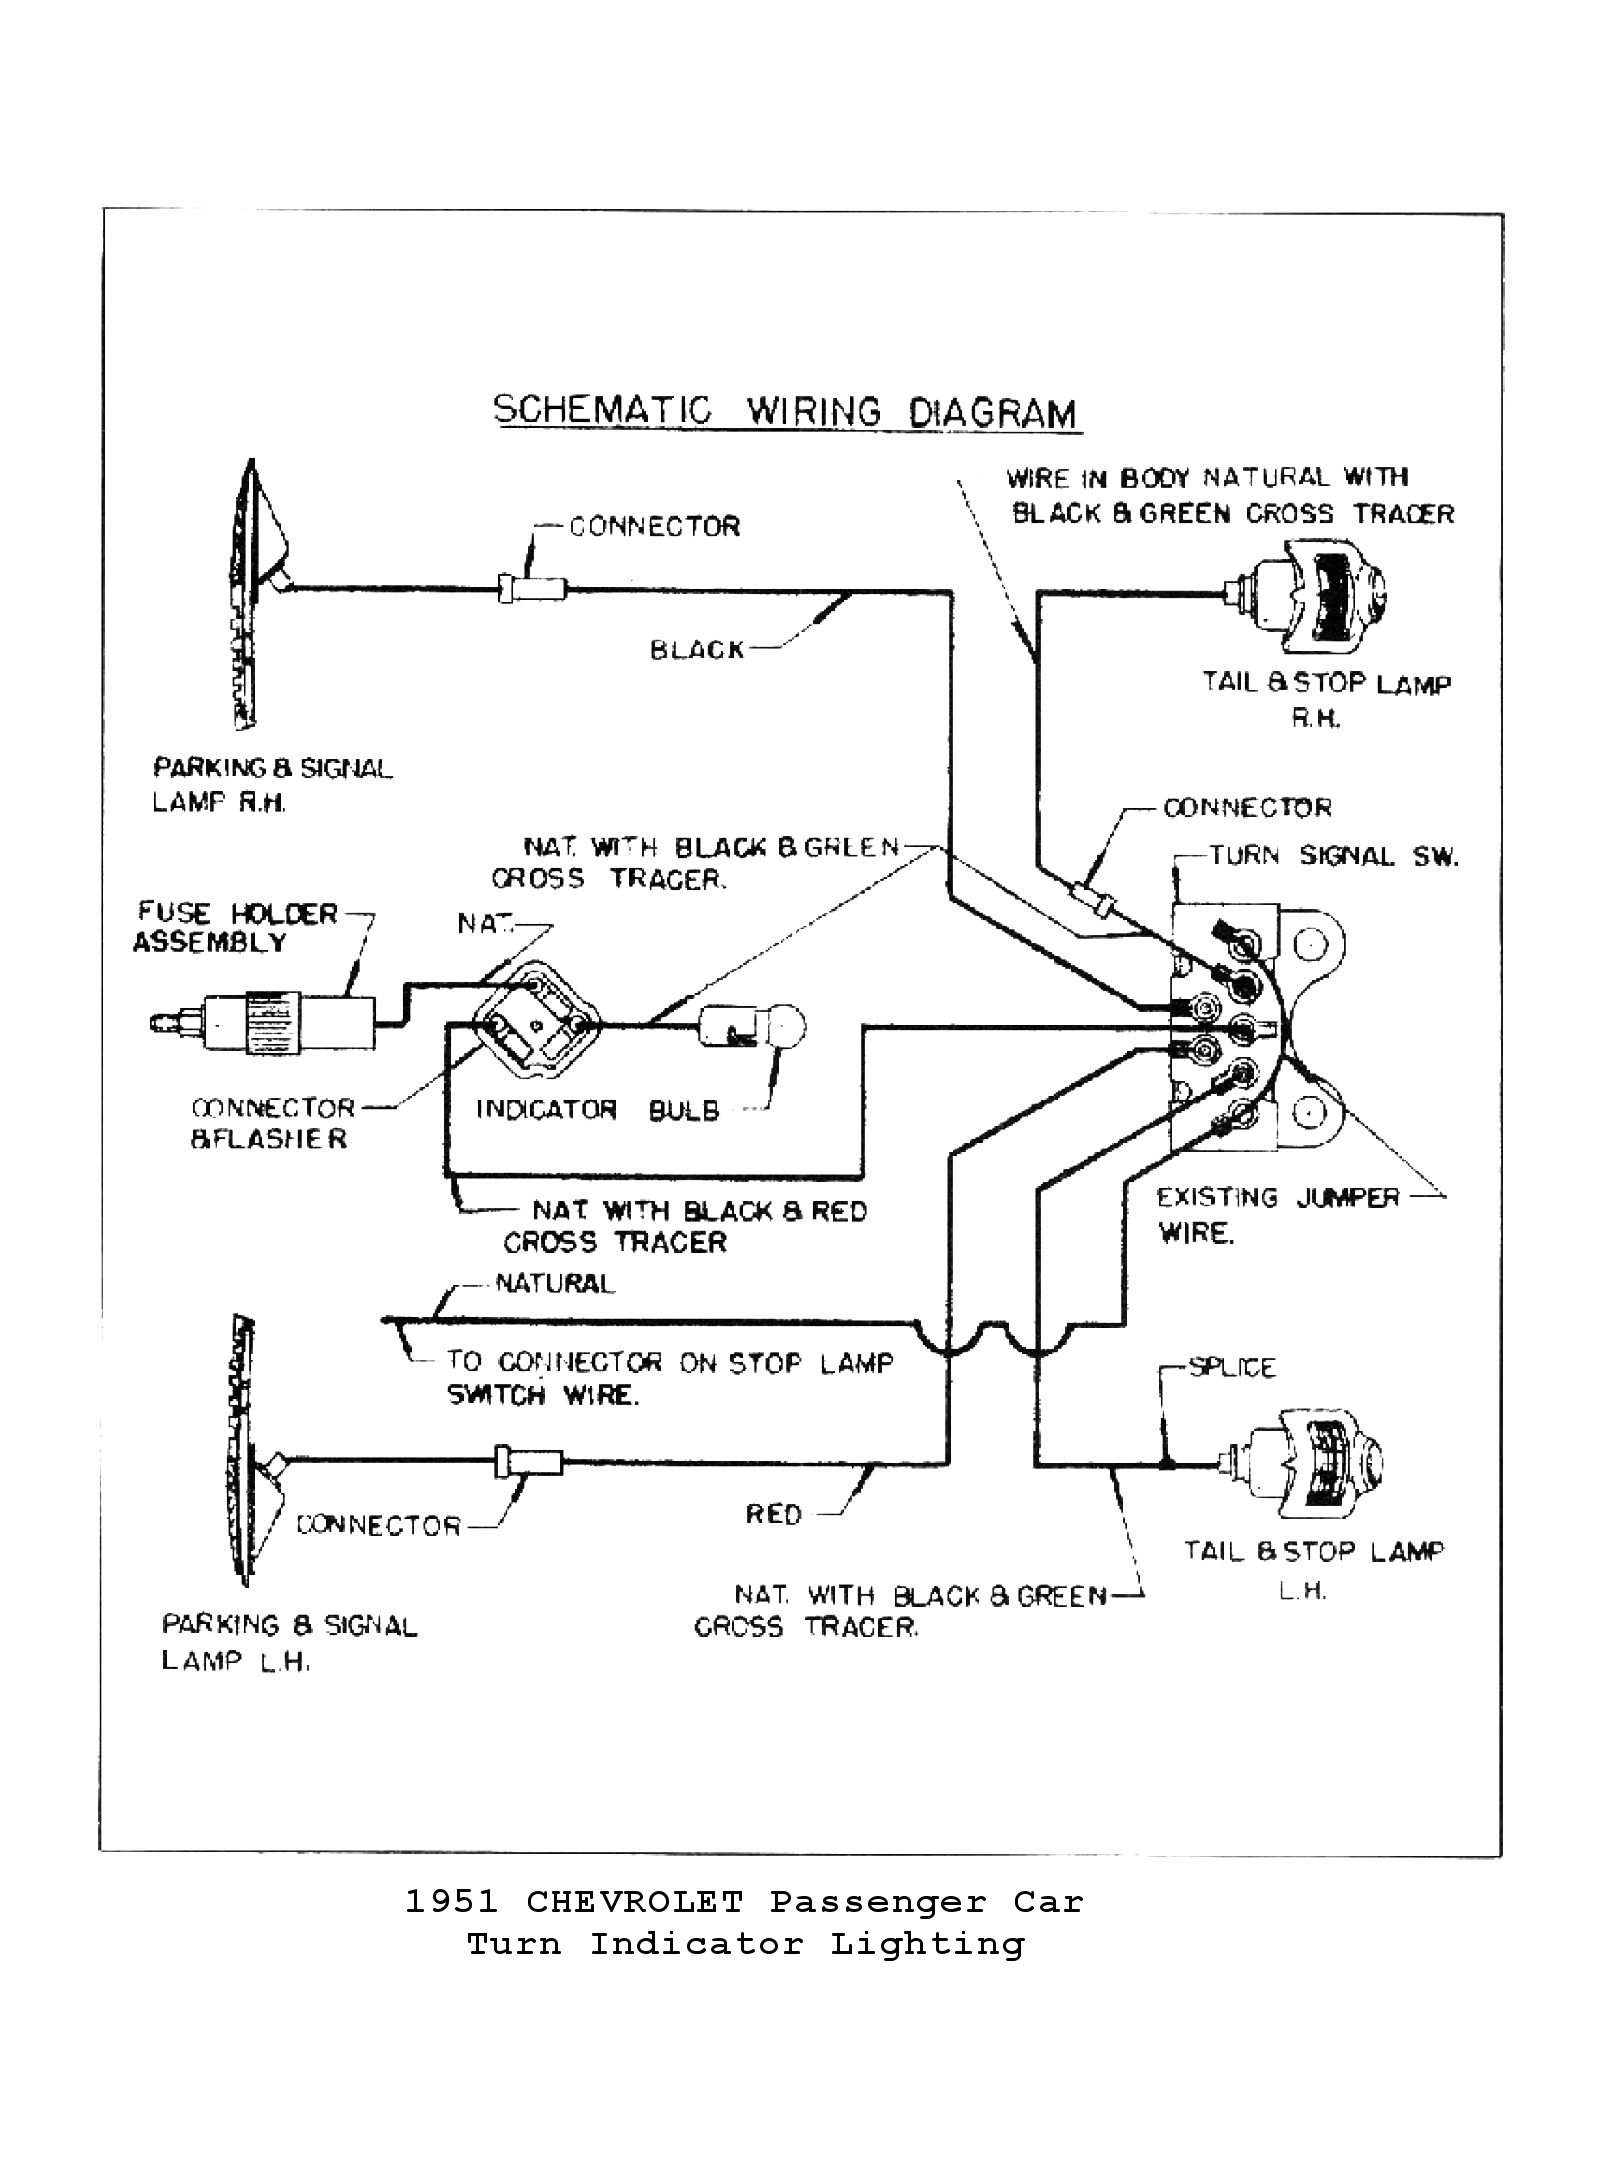 5152turnsignals 55 chevy heater diagram wiring schematic wiring diagram simonand 66 Chevy Headlight Switch Wiring Diagram at bakdesigns.co